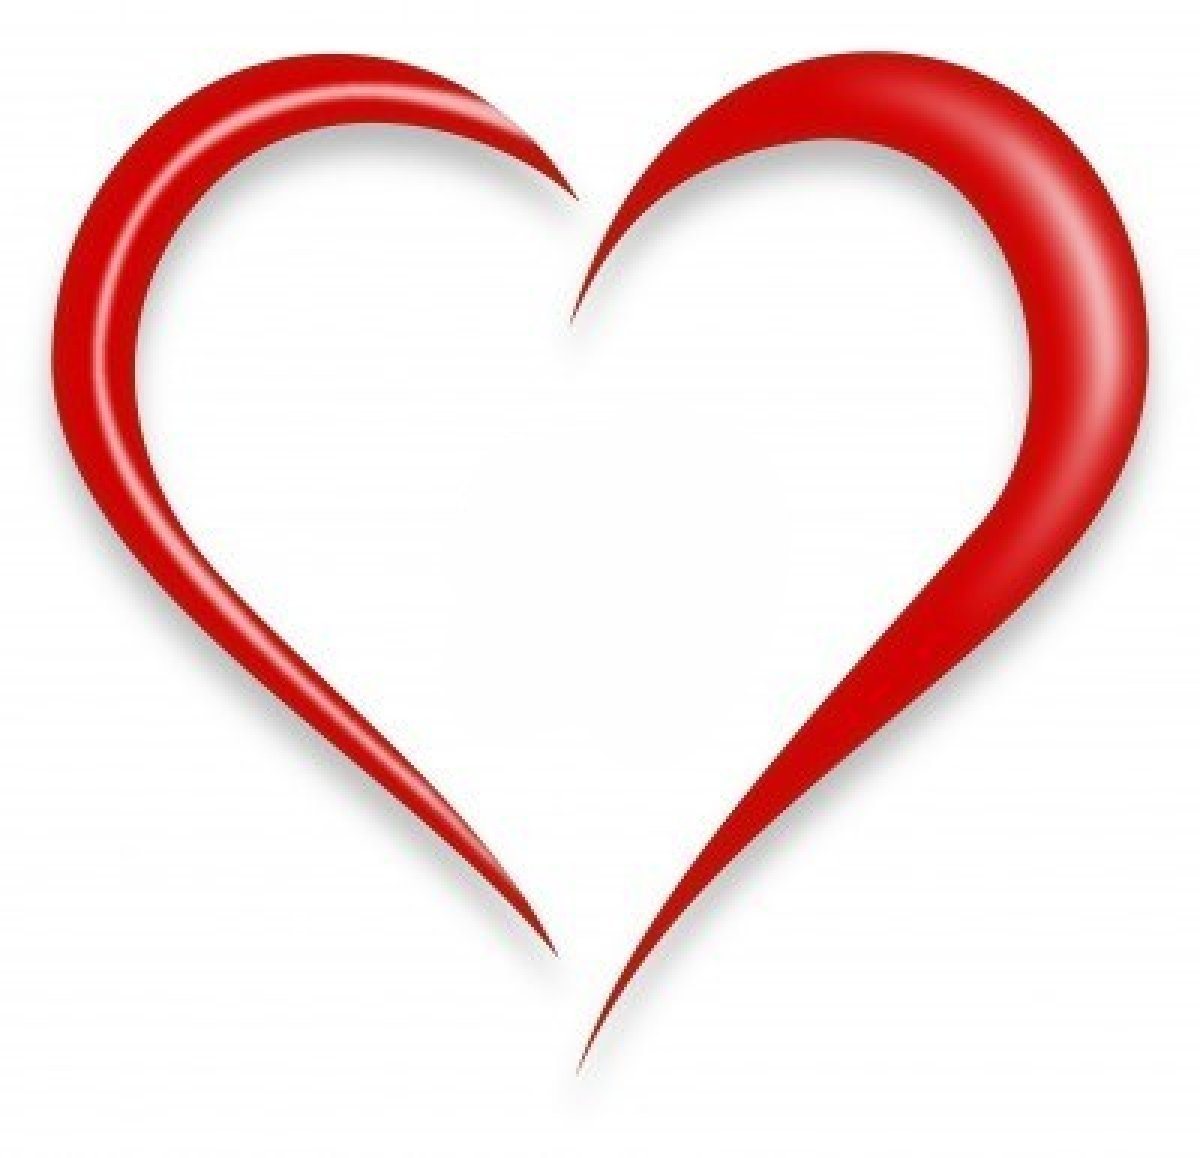 Love Hearth HD PNG Transparent Love Hearth HD.PNG Images. | PlusPNG